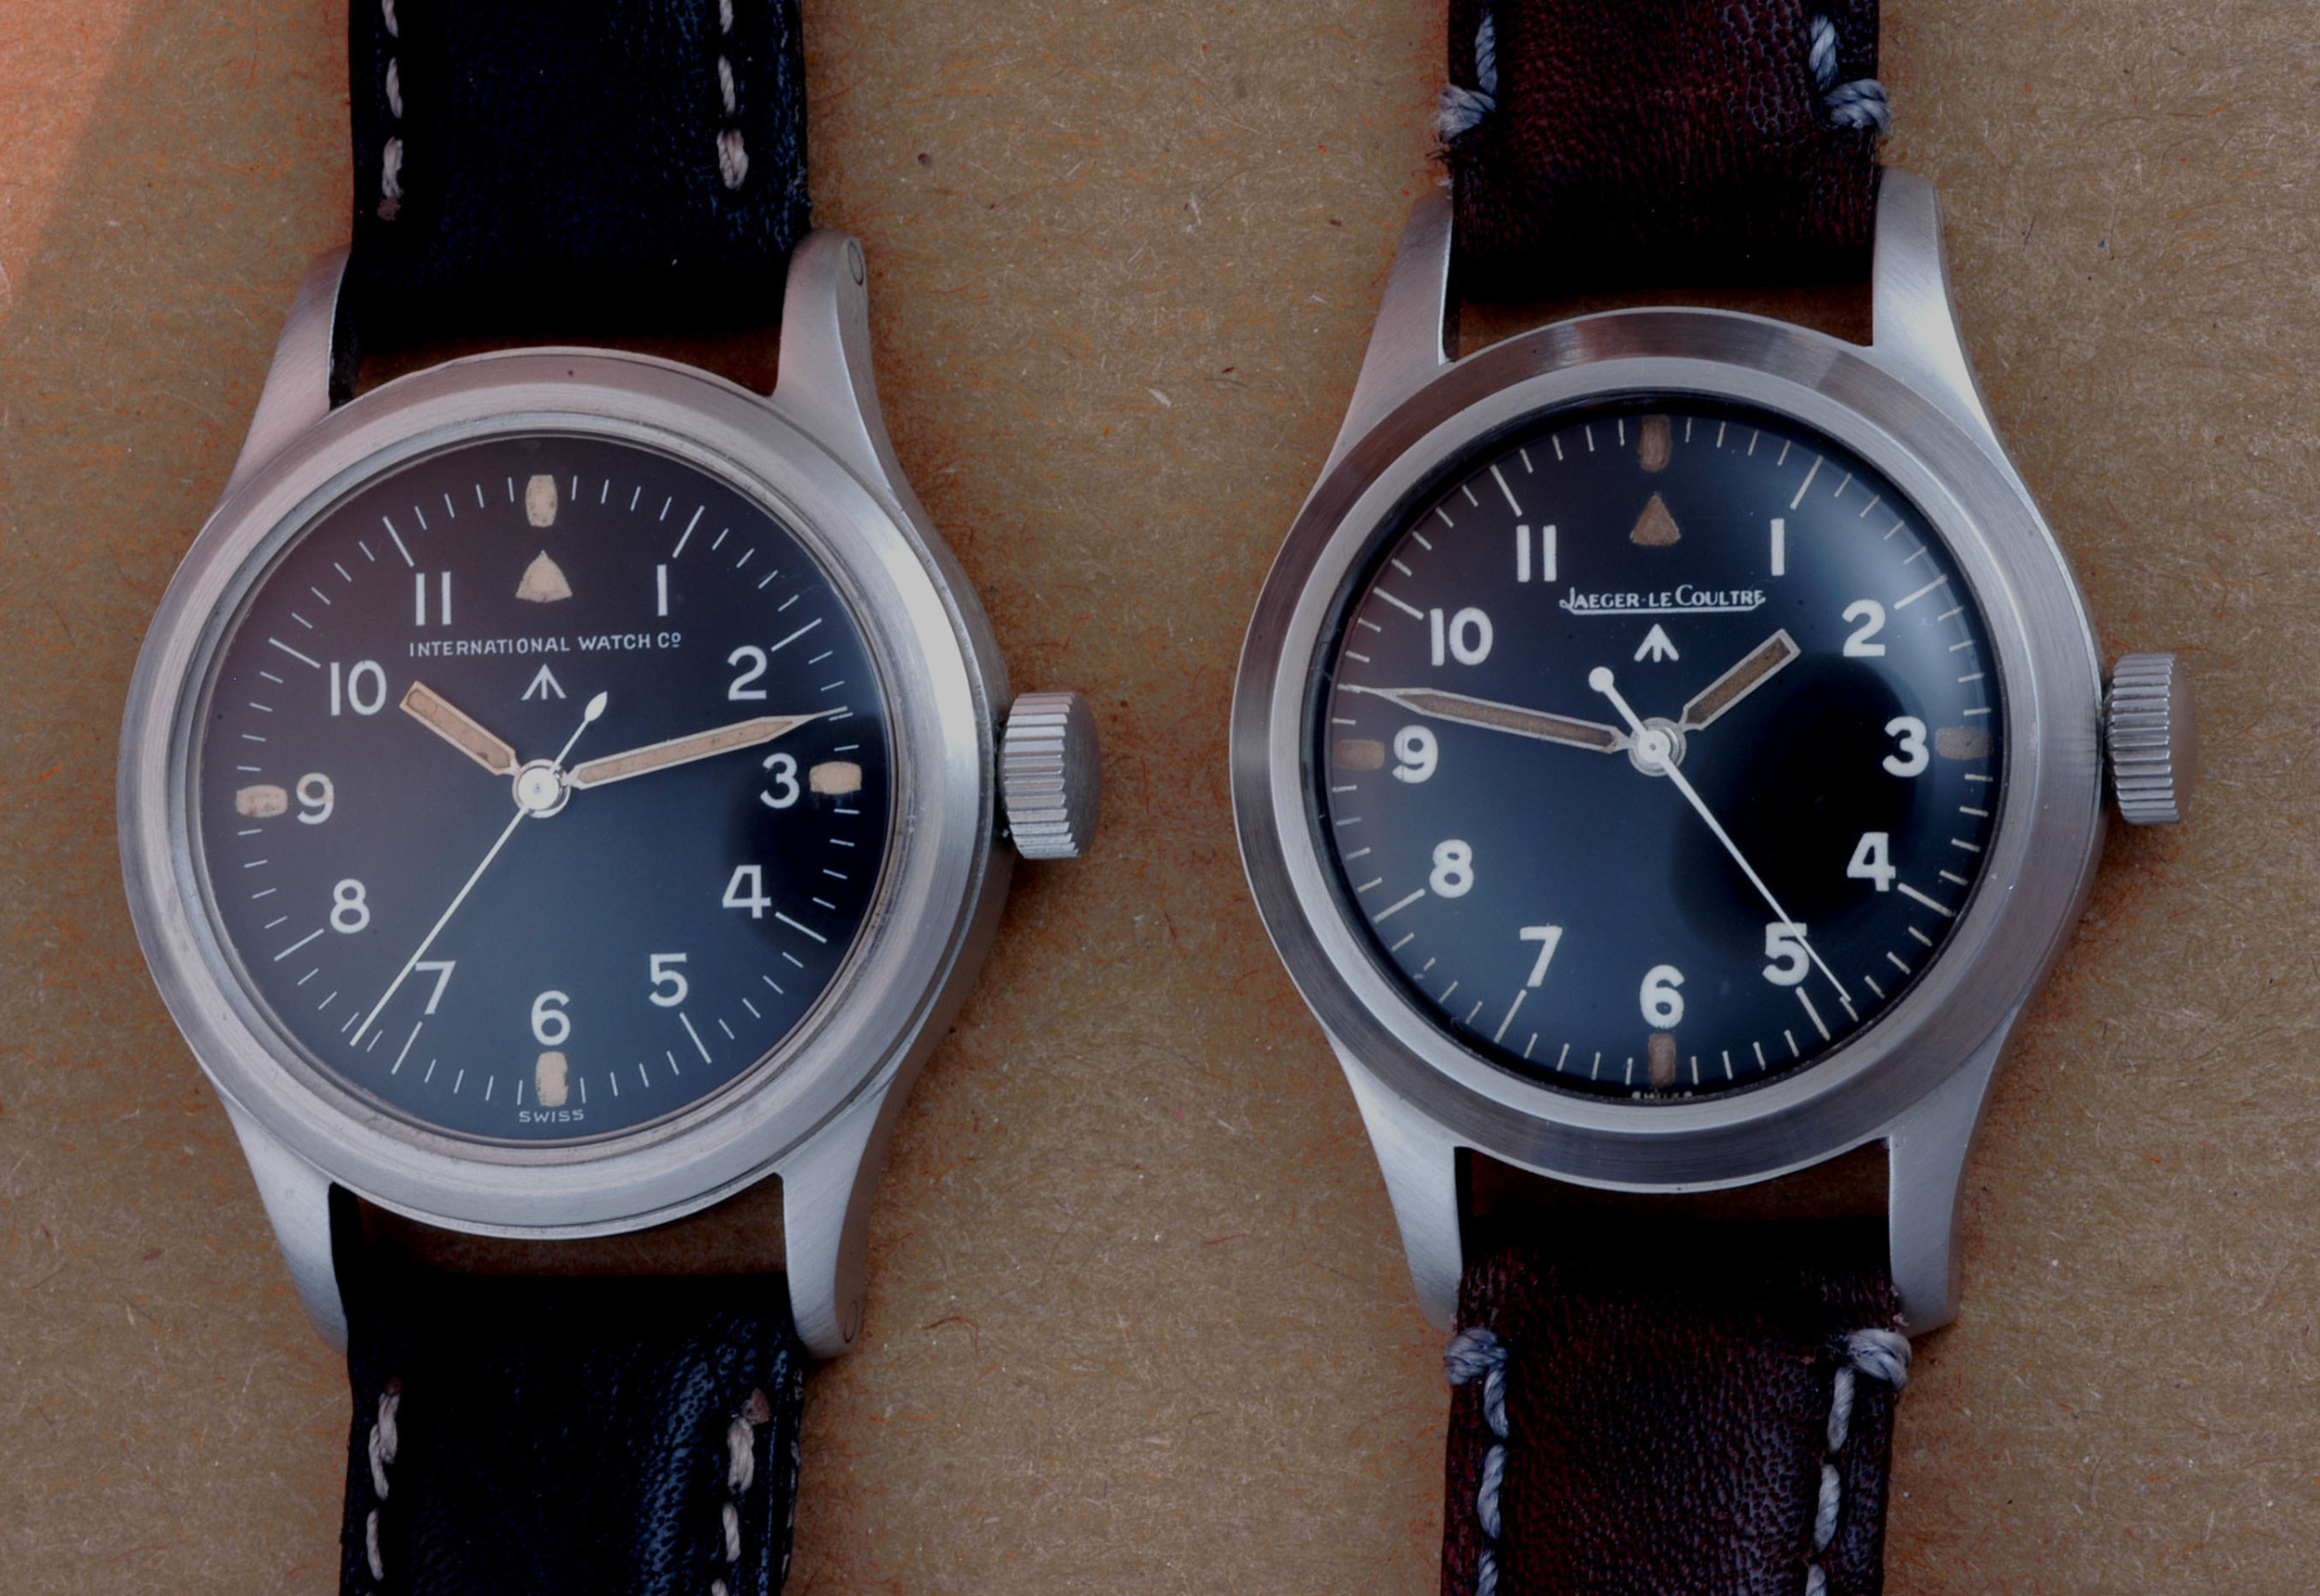 IWC and JLC Mk 11 watches.  Image (c) Franco and markeleven.com